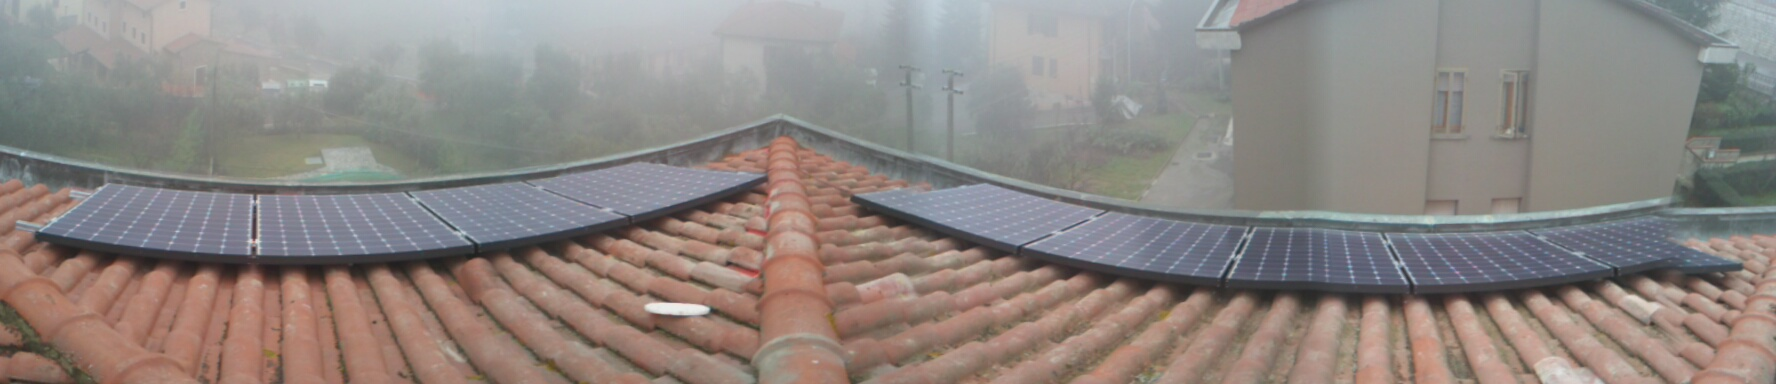 Impianto Fotovoltaico Lightland-SunPower in Toscana